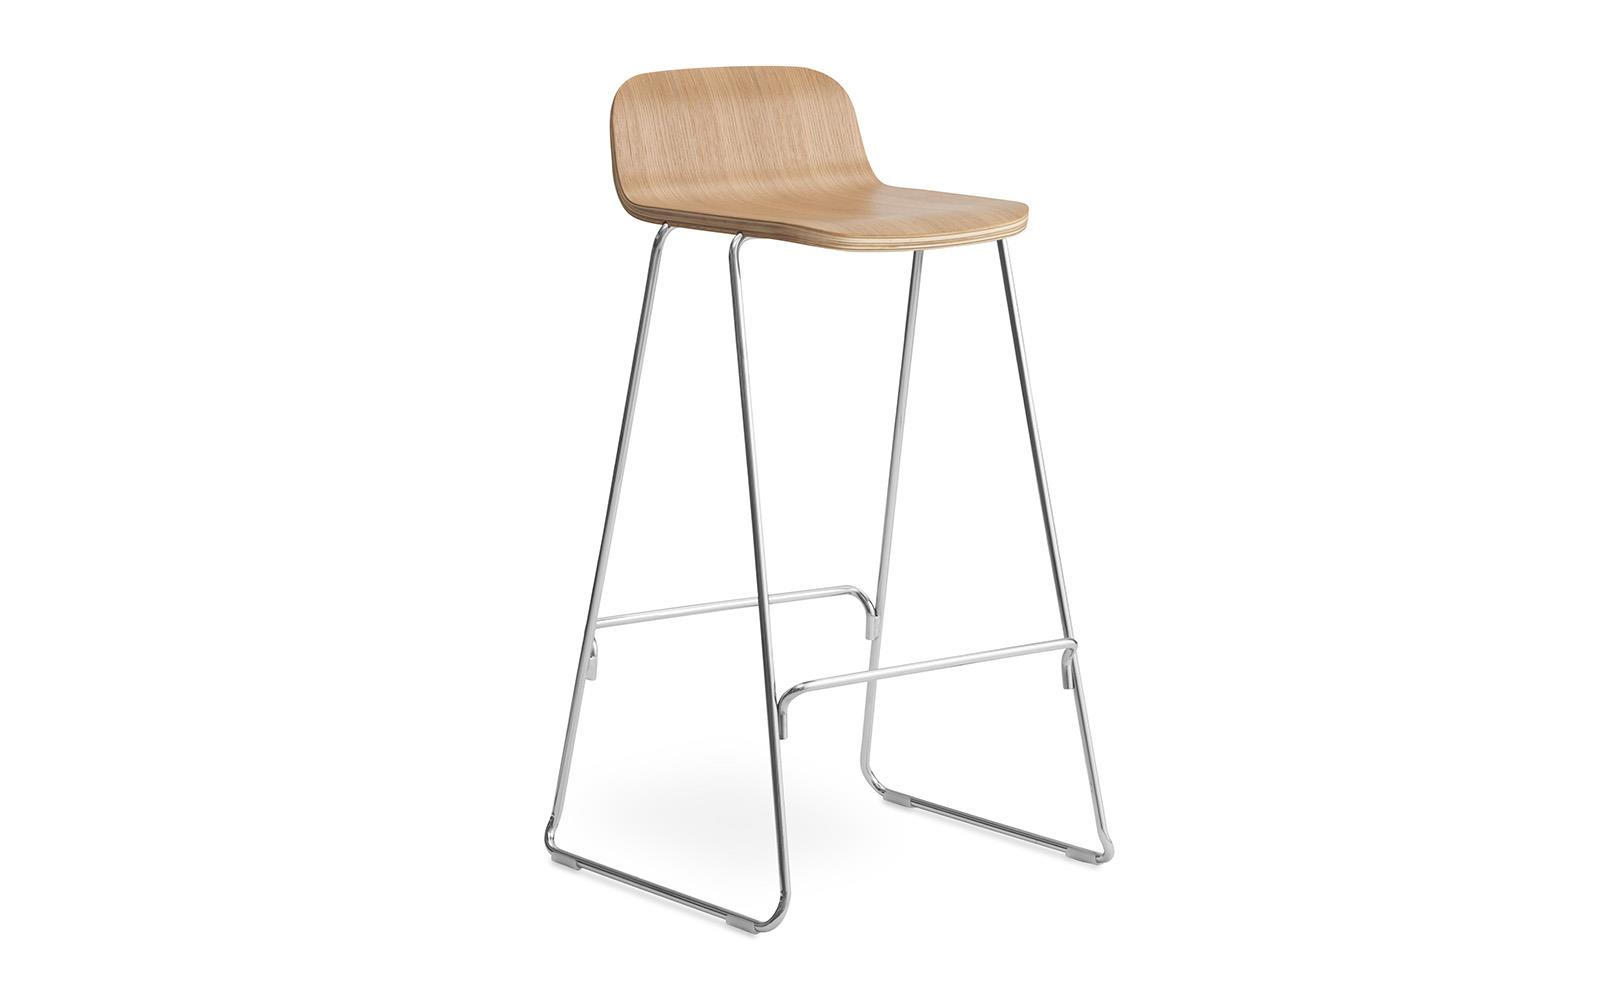 normann copenhagen barstol Just barstool – modern shell chair in innovative design | Normann  normann copenhagen barstol